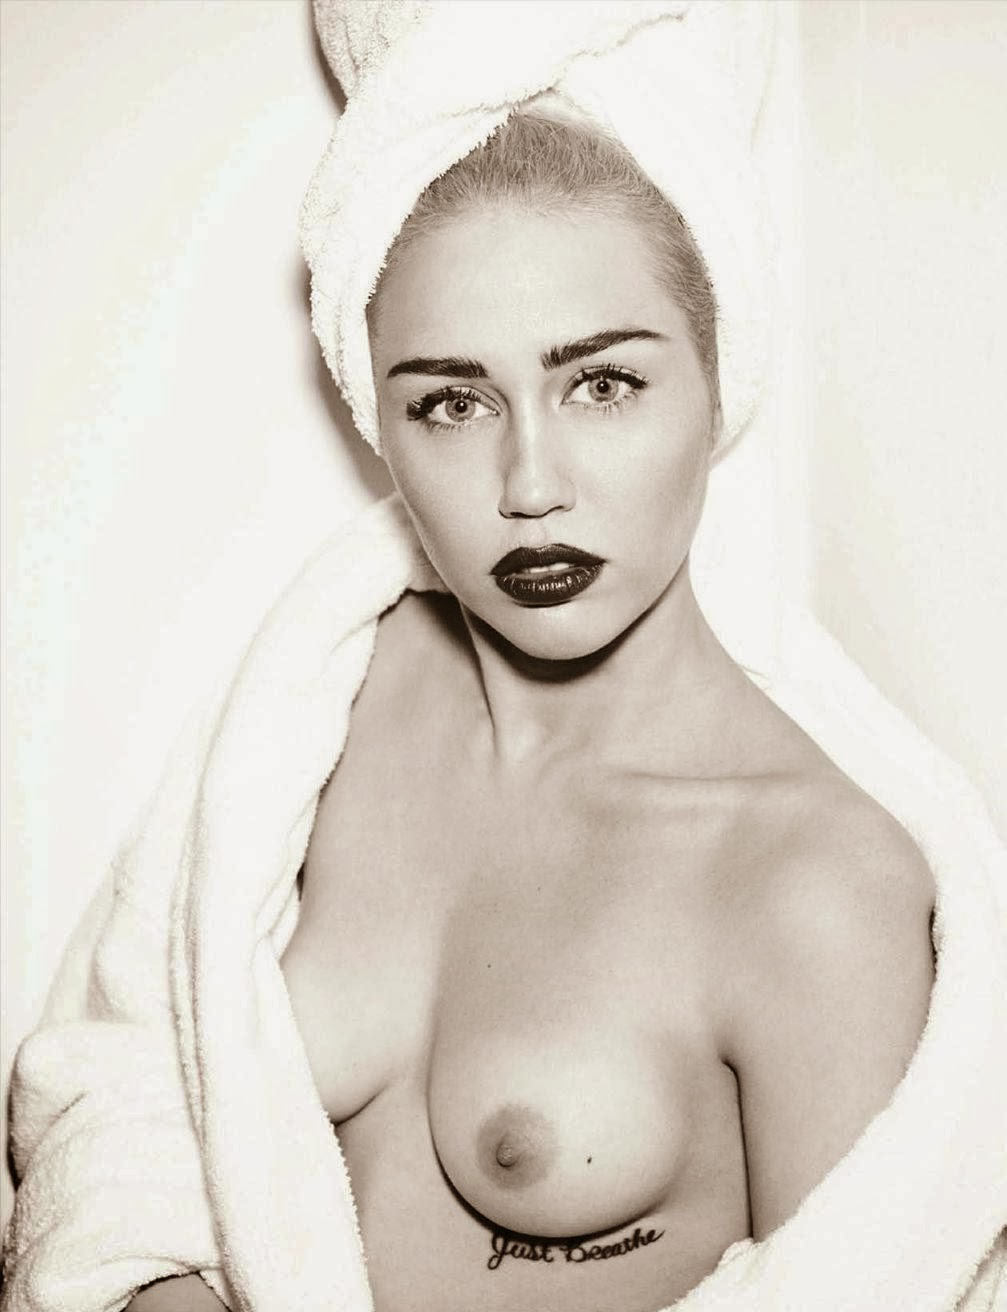 Miley cyrus nude interview opinion